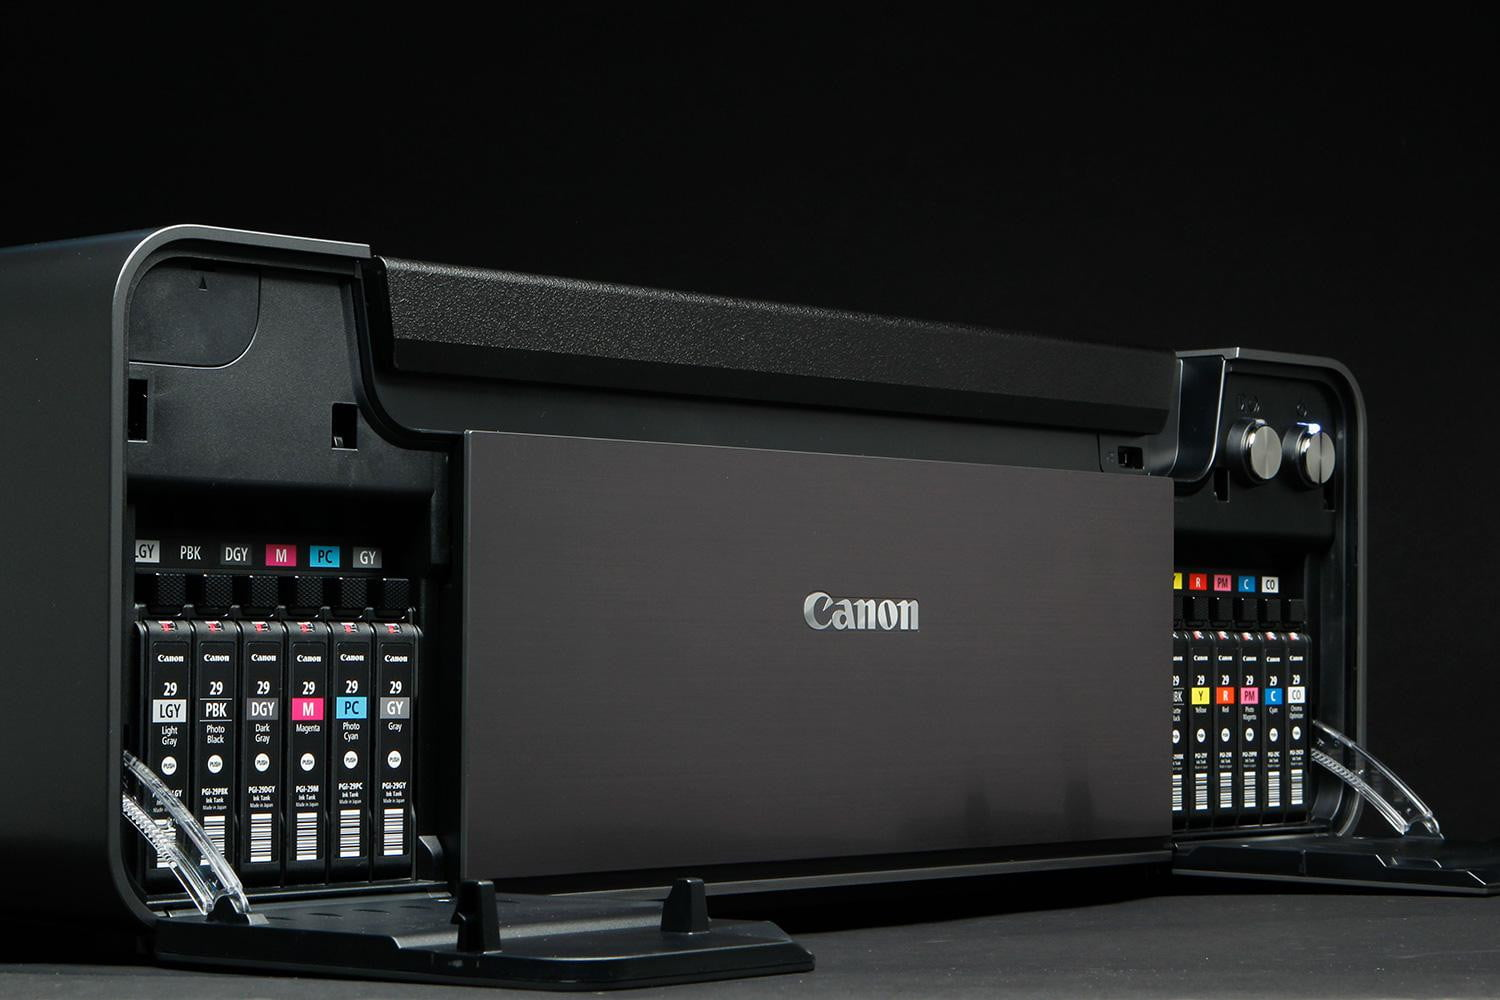 canon pixma pro 1 review digital trends. Black Bedroom Furniture Sets. Home Design Ideas